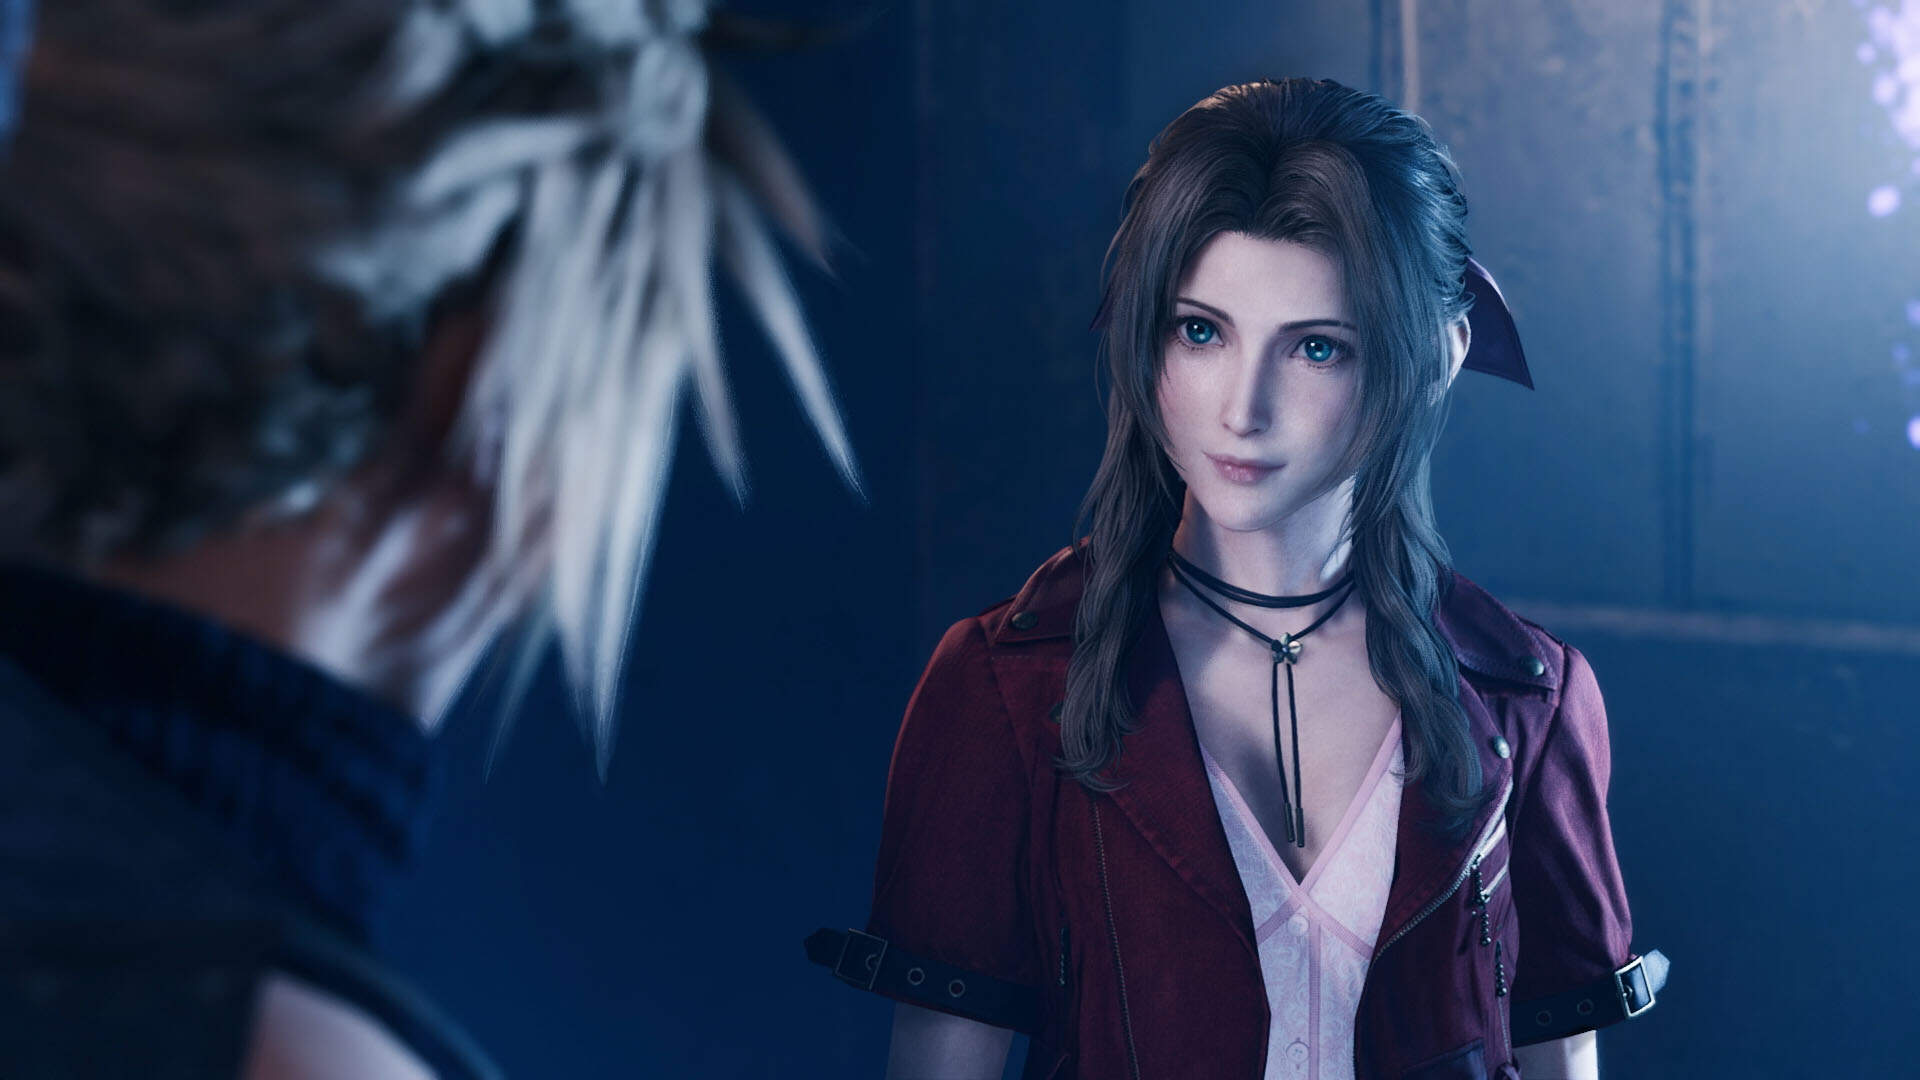 Final Fantasy 7 Remake's Final Trailer Shows Off Every Stunning Character Model